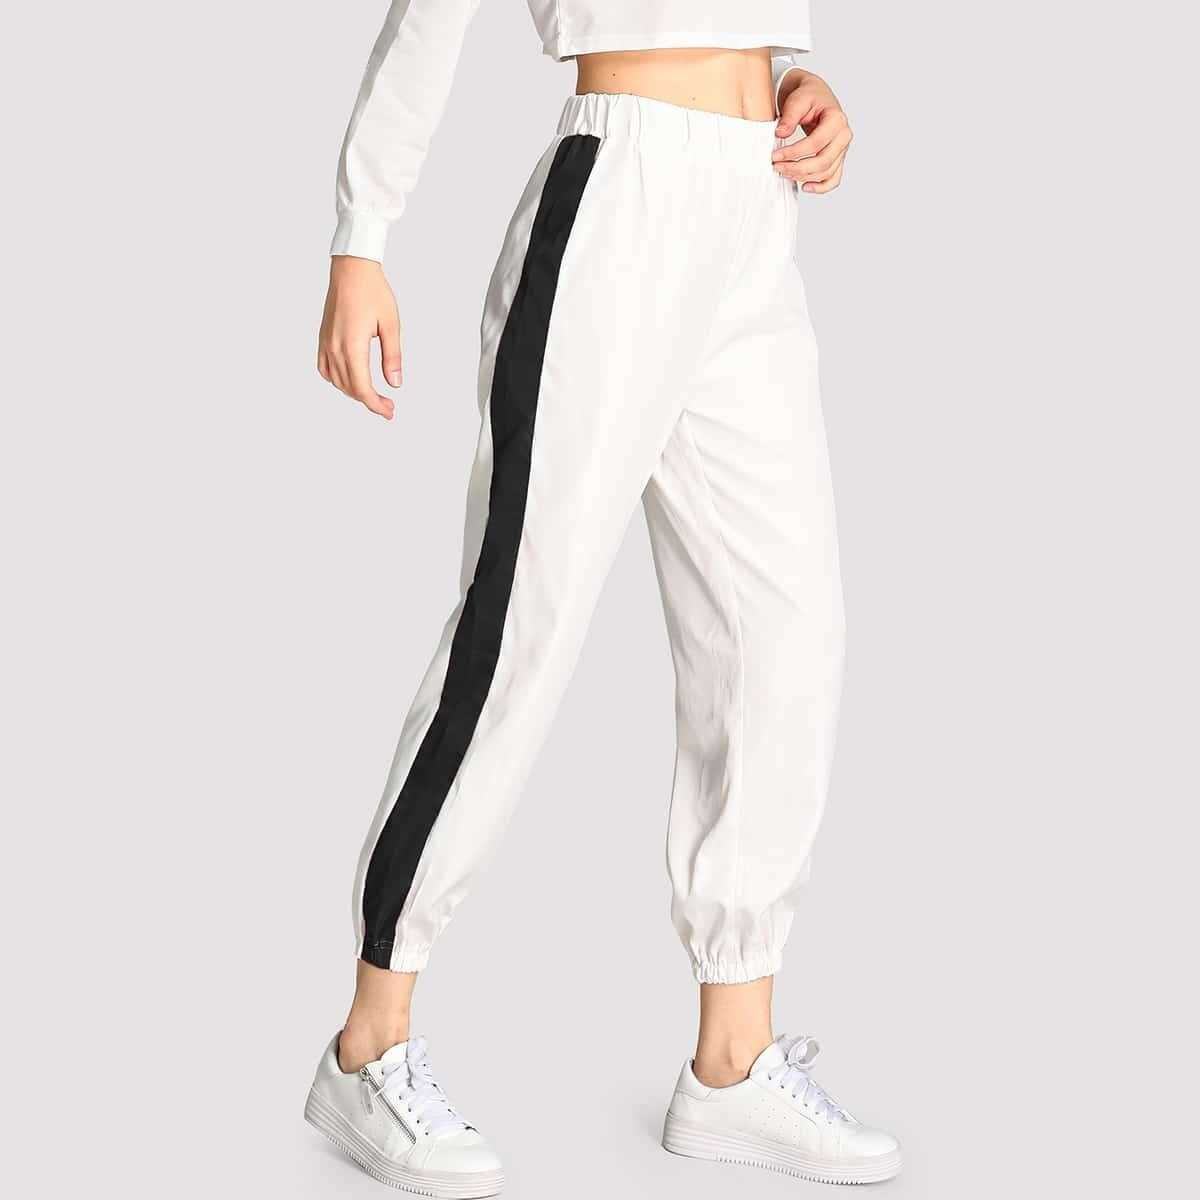 Contrast Trim Pants in White by ROMWE on GOOFASH